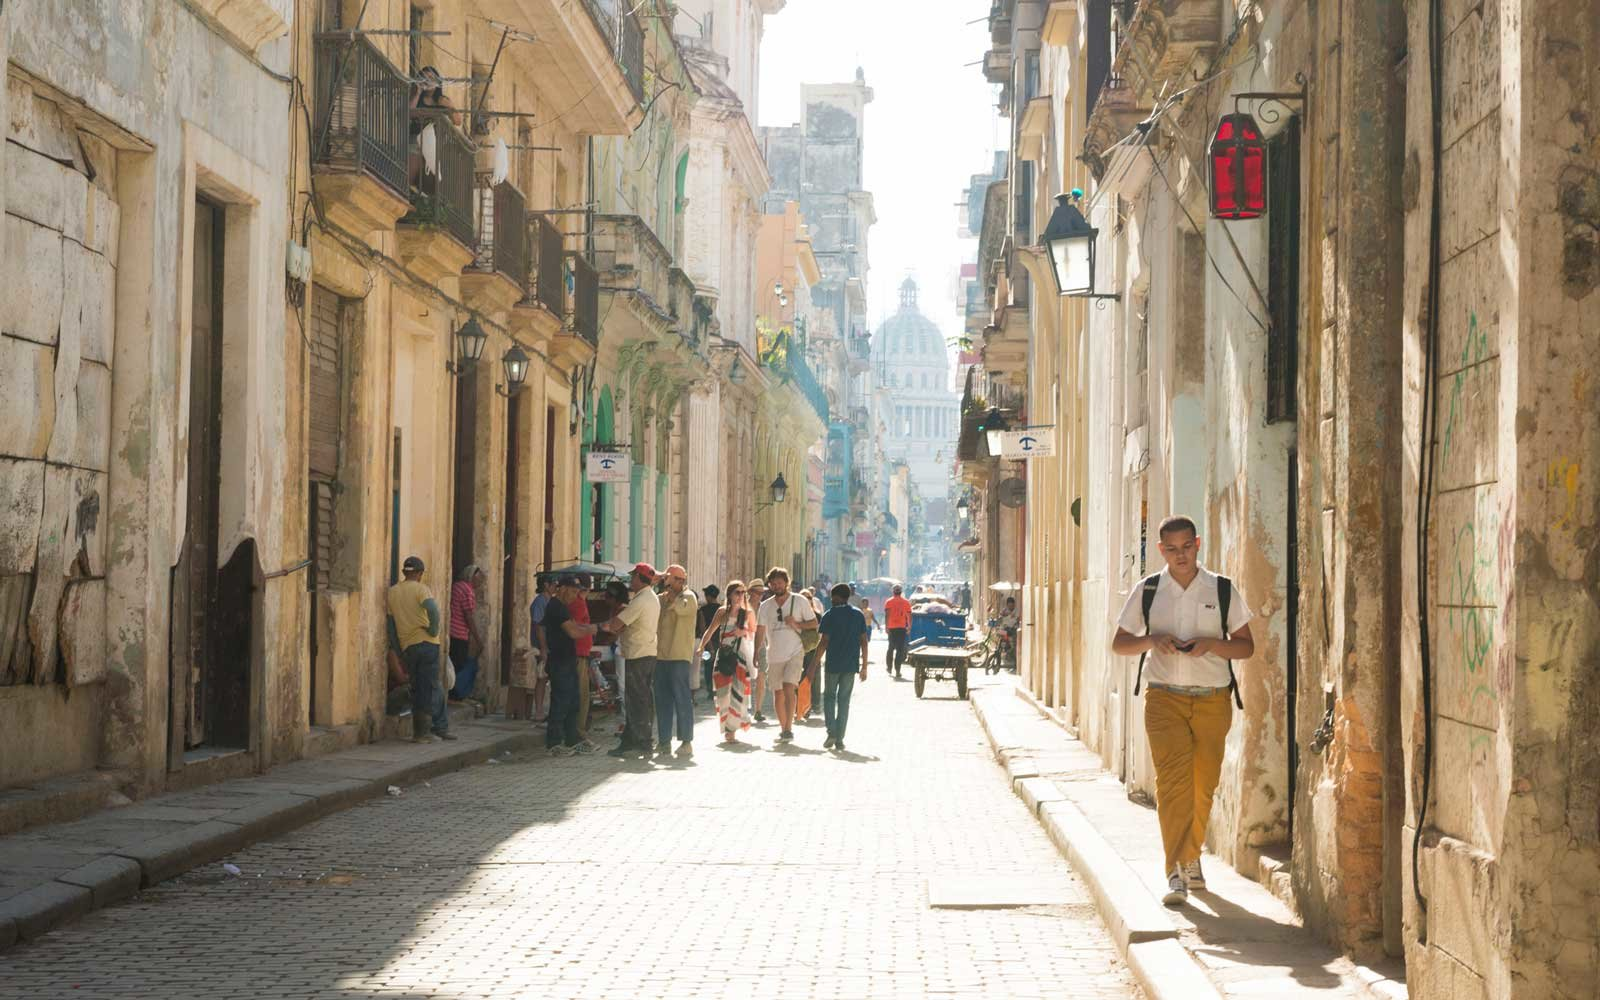 On a sunny afternoon in Old Havana, Cuba